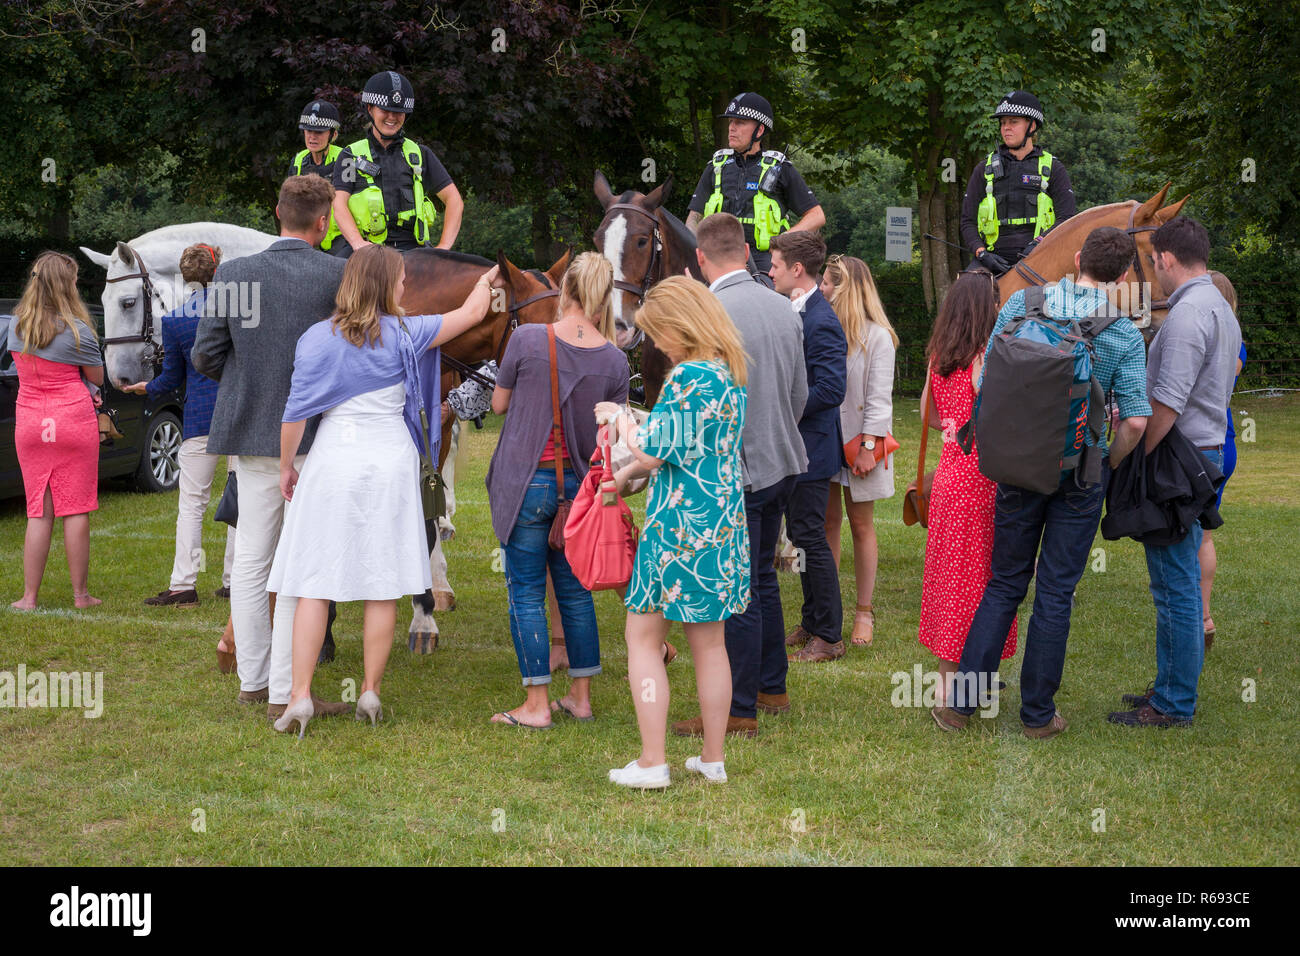 Spectators chat to mounted Thames Valley Police and admire the horses at Henley Royal Regatta - Stock Image